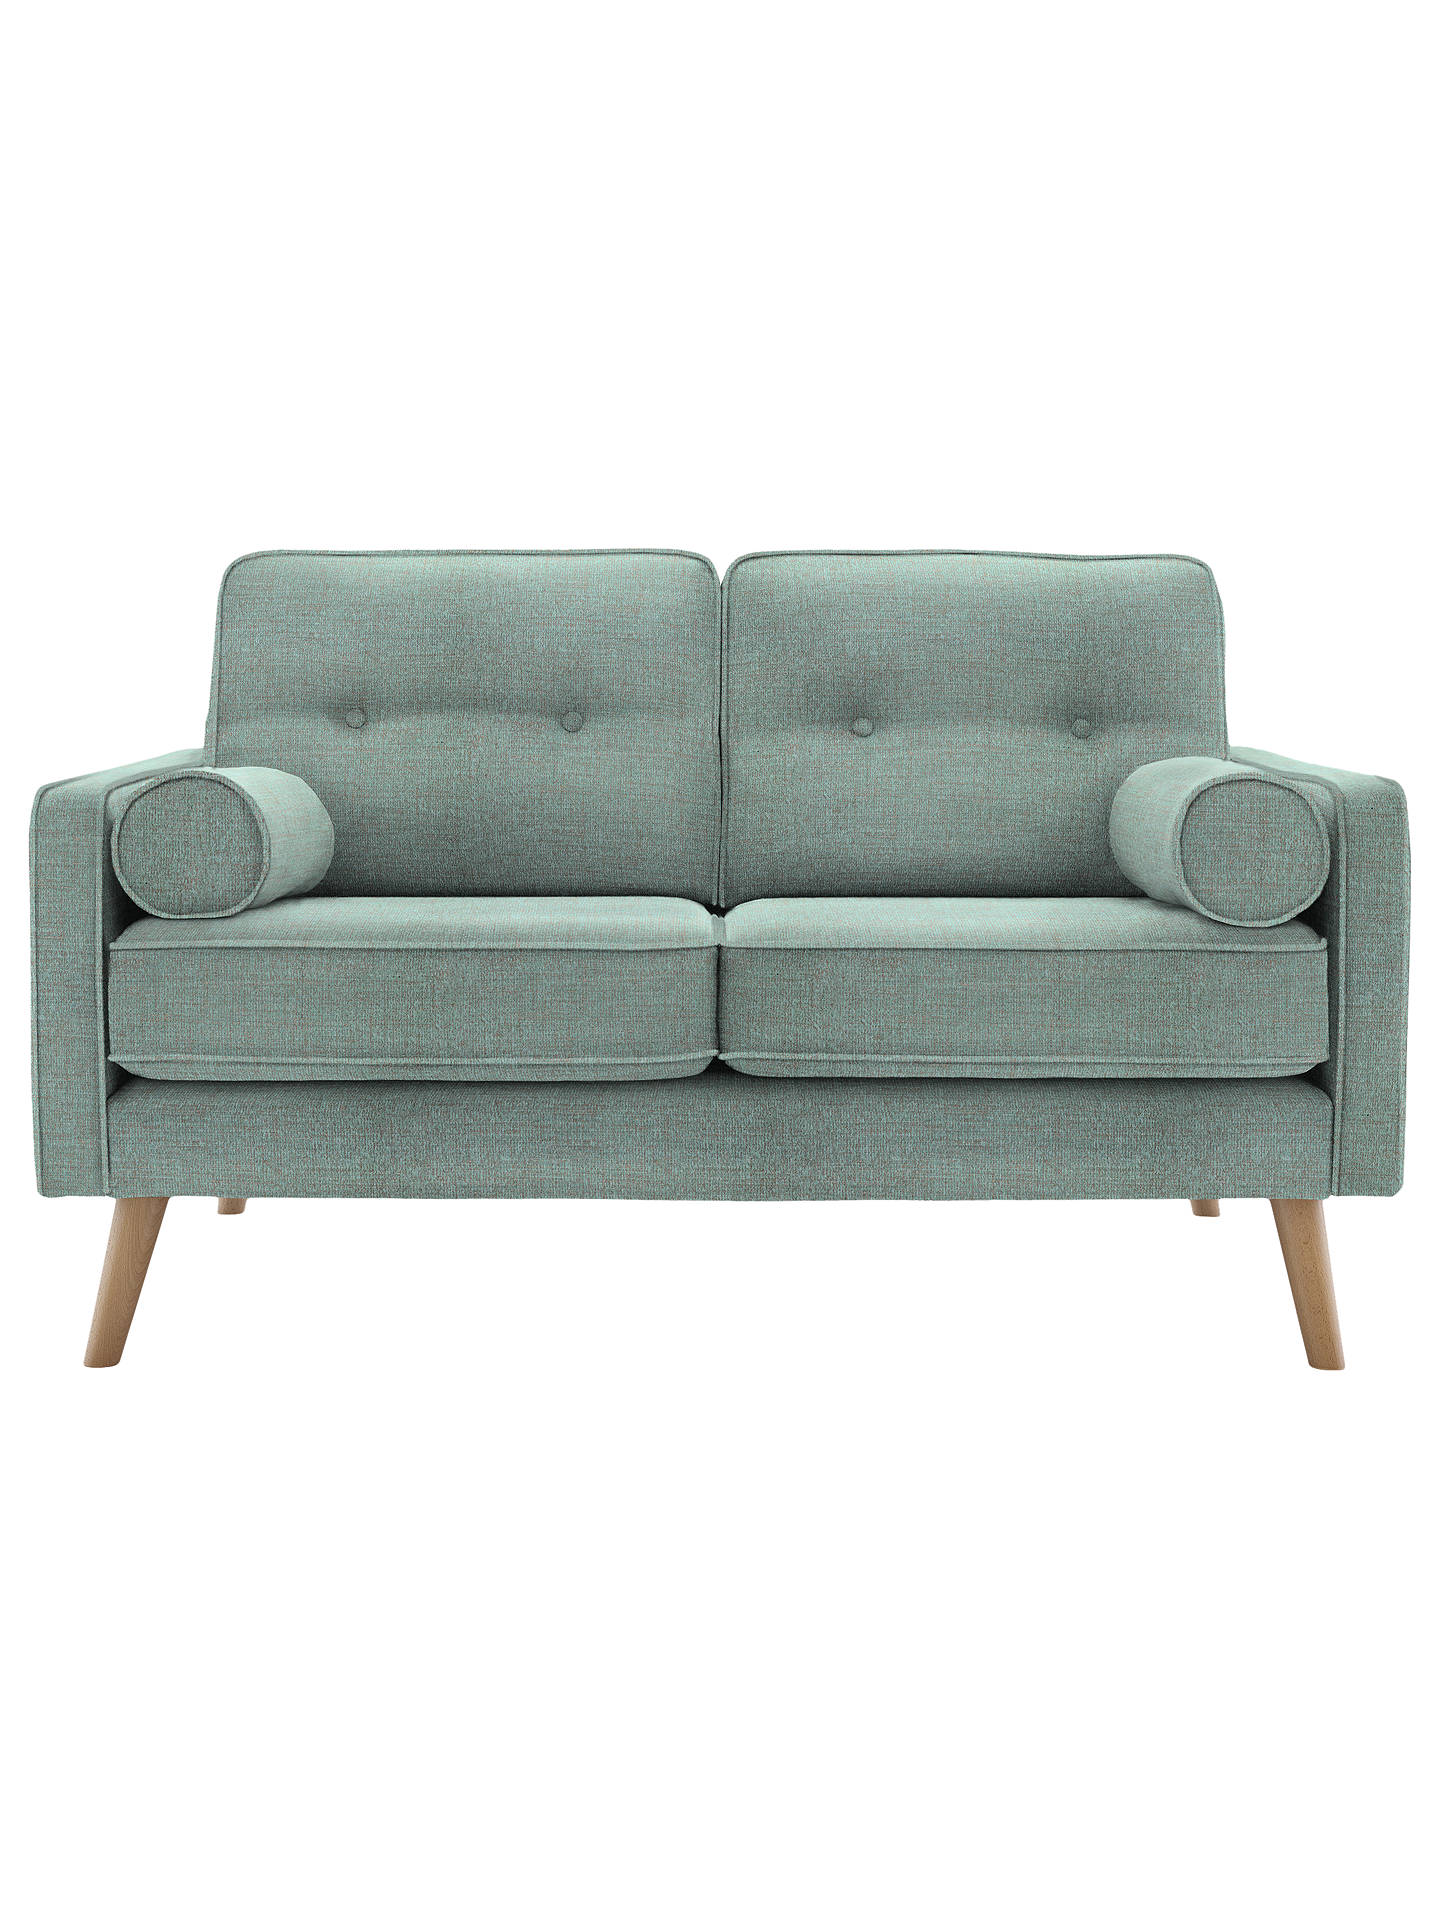 BuyG Plan Vintage The Sixty Five Small 2 Seater Sofa, Flurry Aqua Online at johnlewis.com